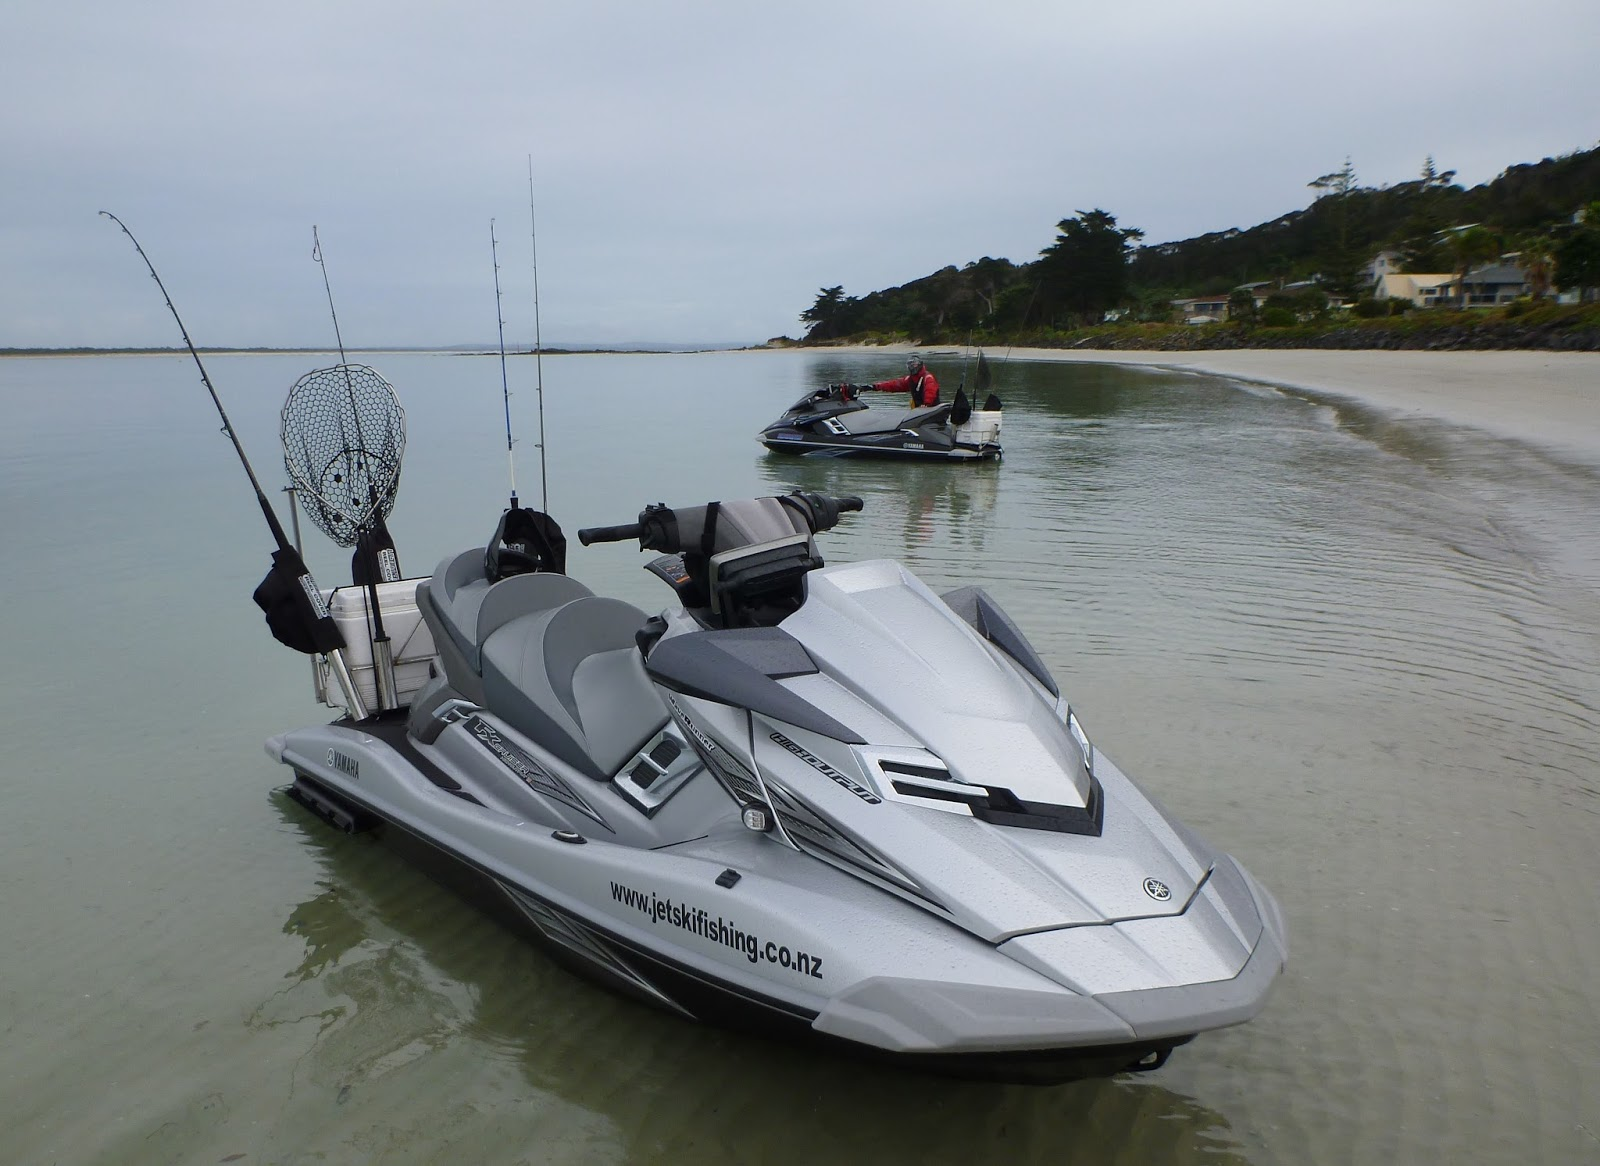 jet ski fishing blog august 2013 ForBest Jet Ski For Fishing